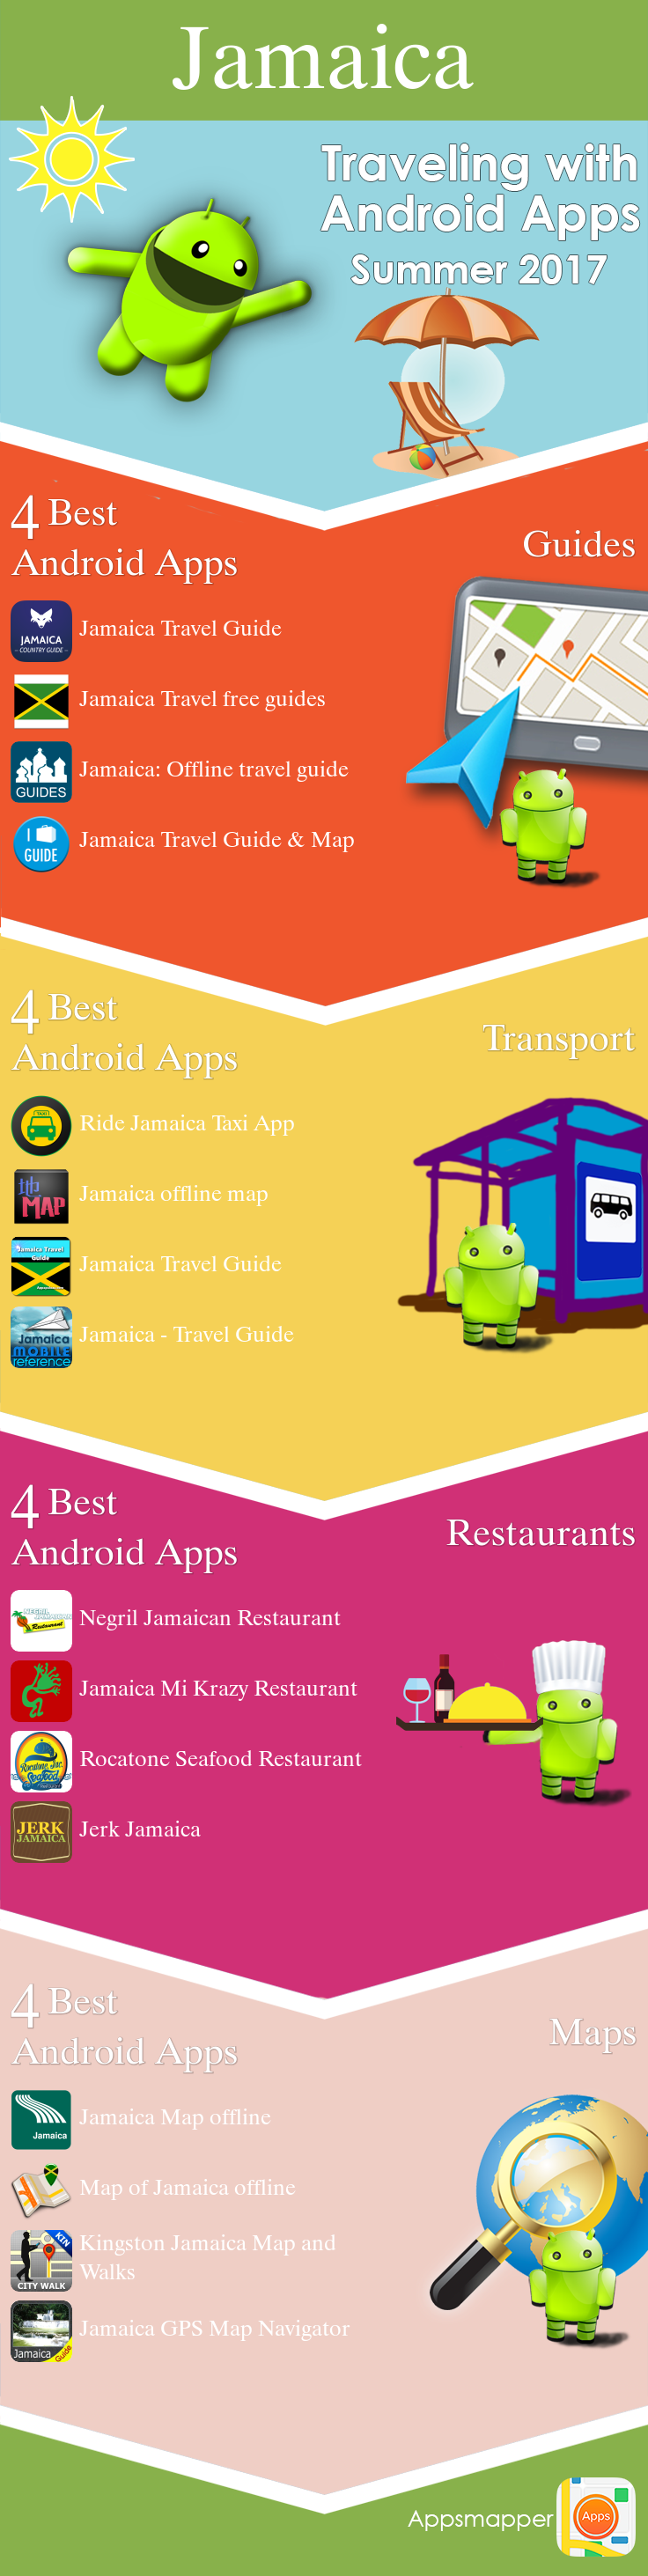 Jamaica Android apps Travel Guides, Maps, Transportation